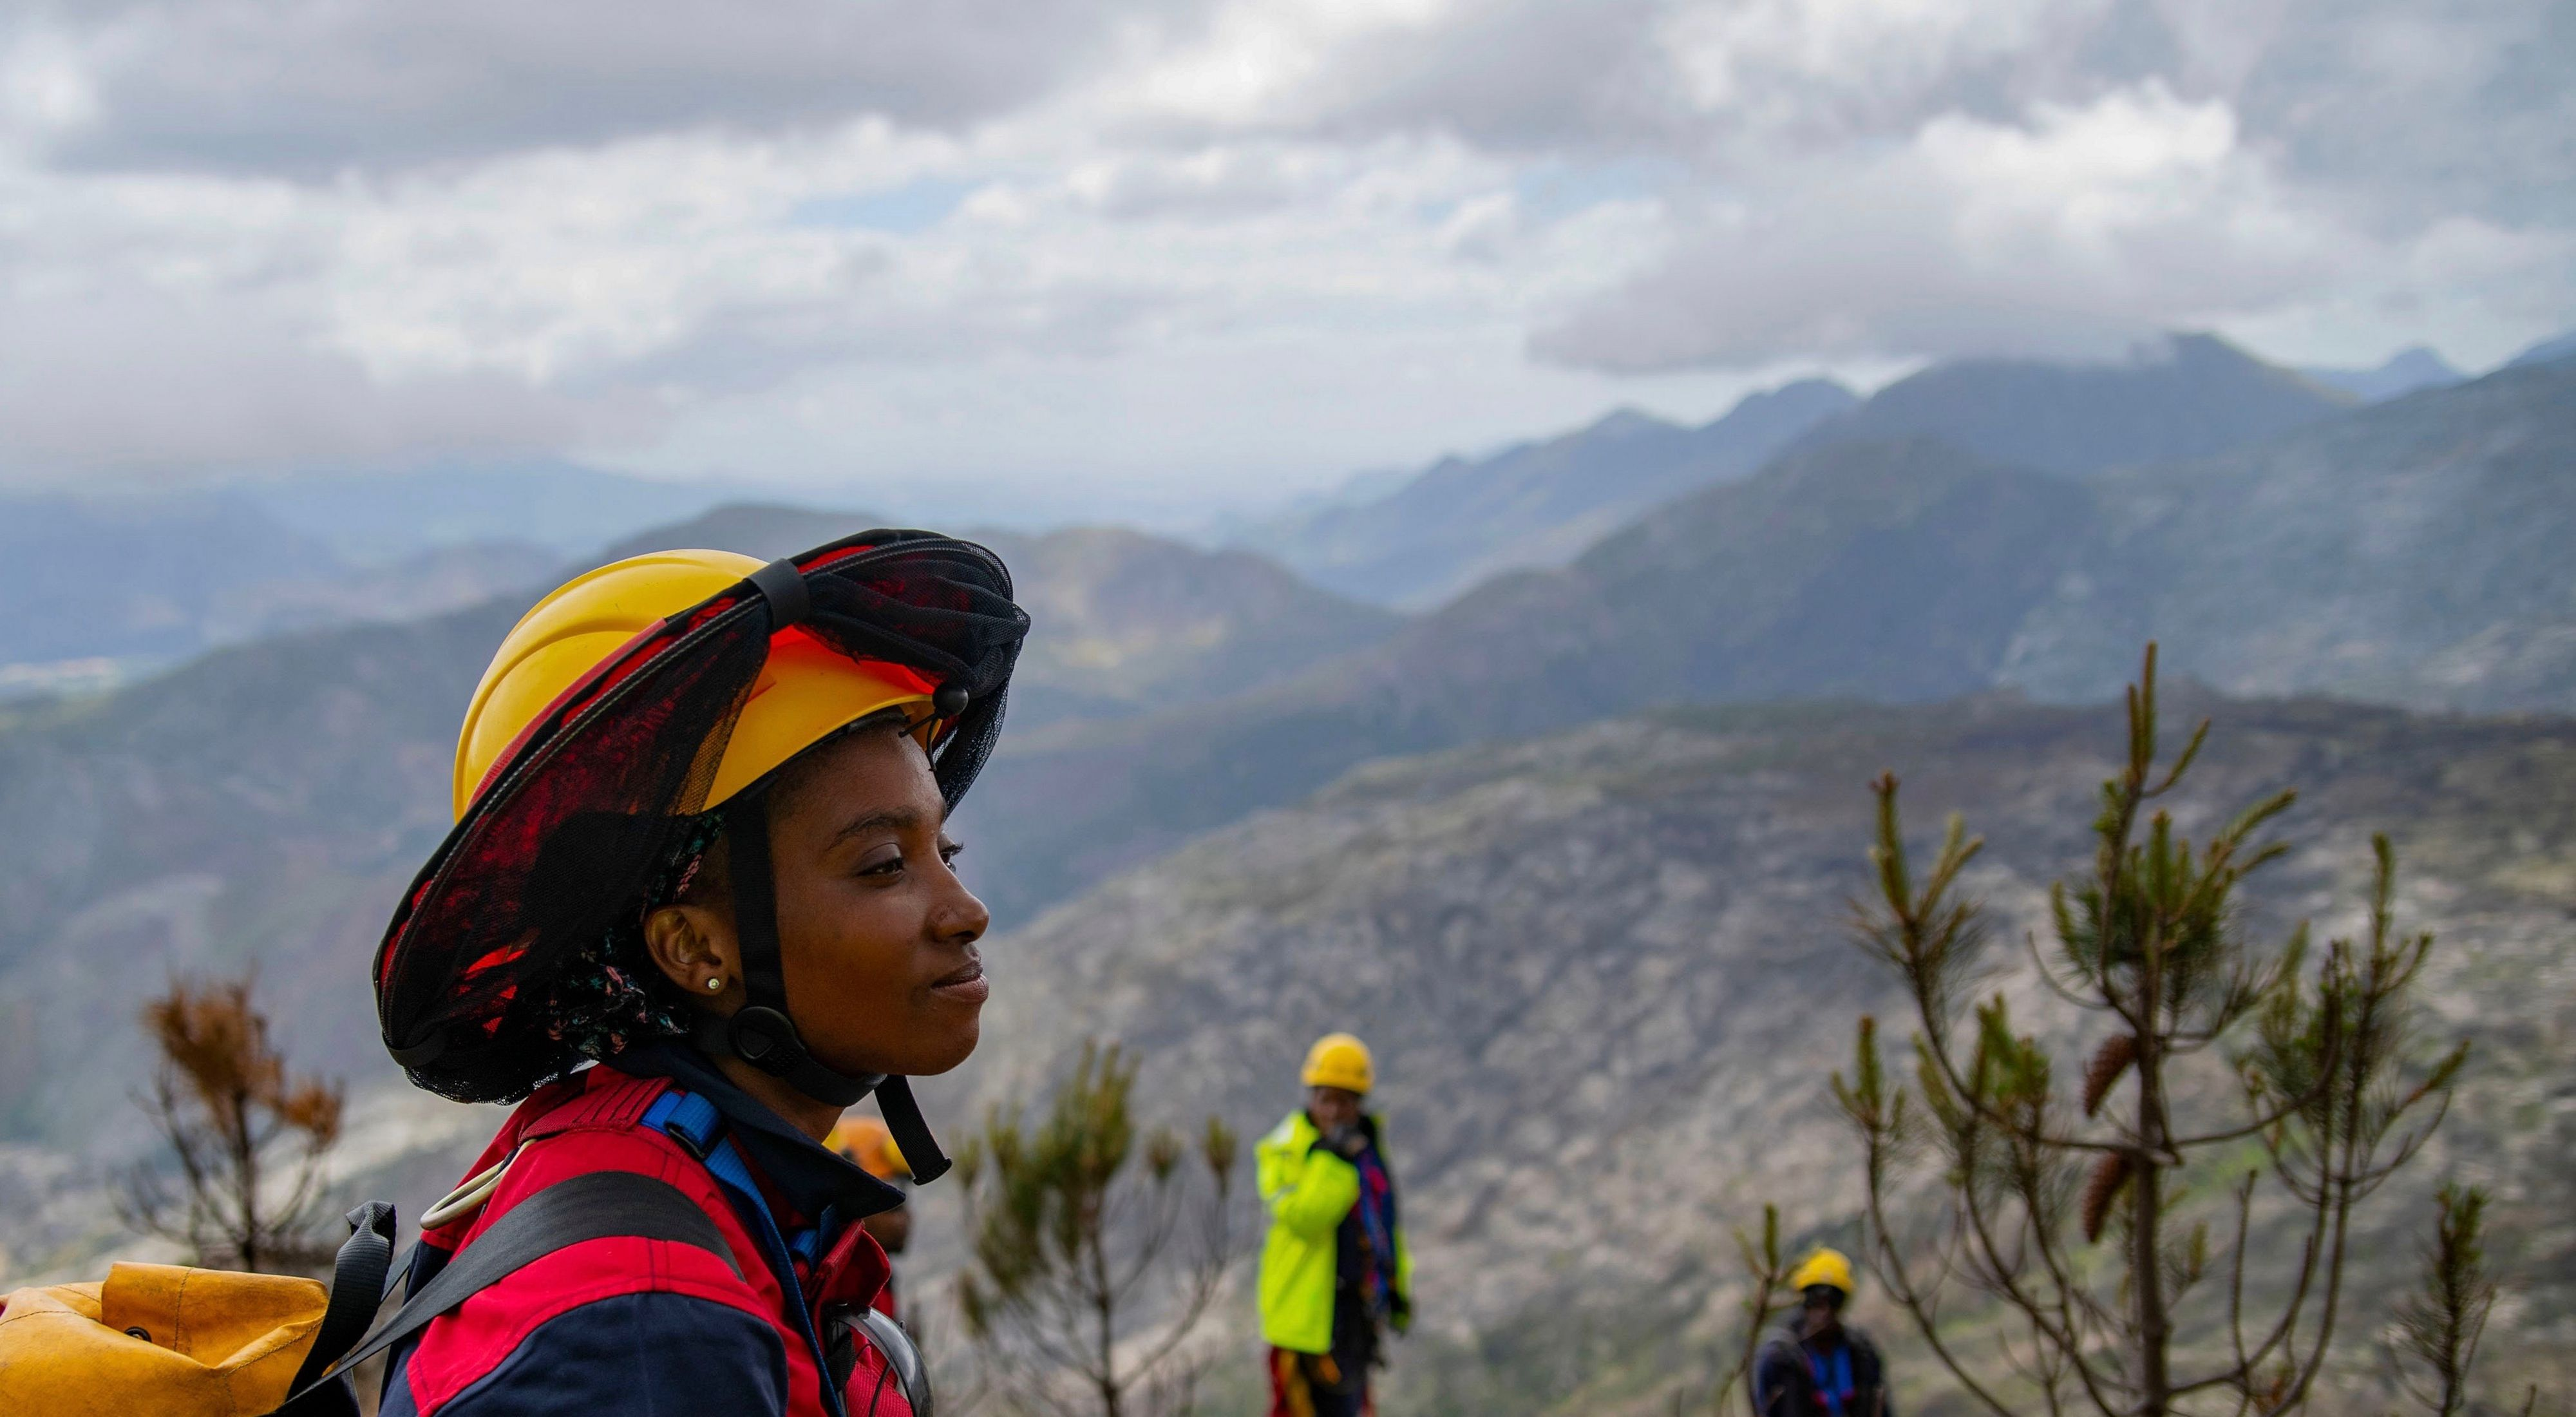 A person overlooking a mountain with a yellow helmet and backpack on.